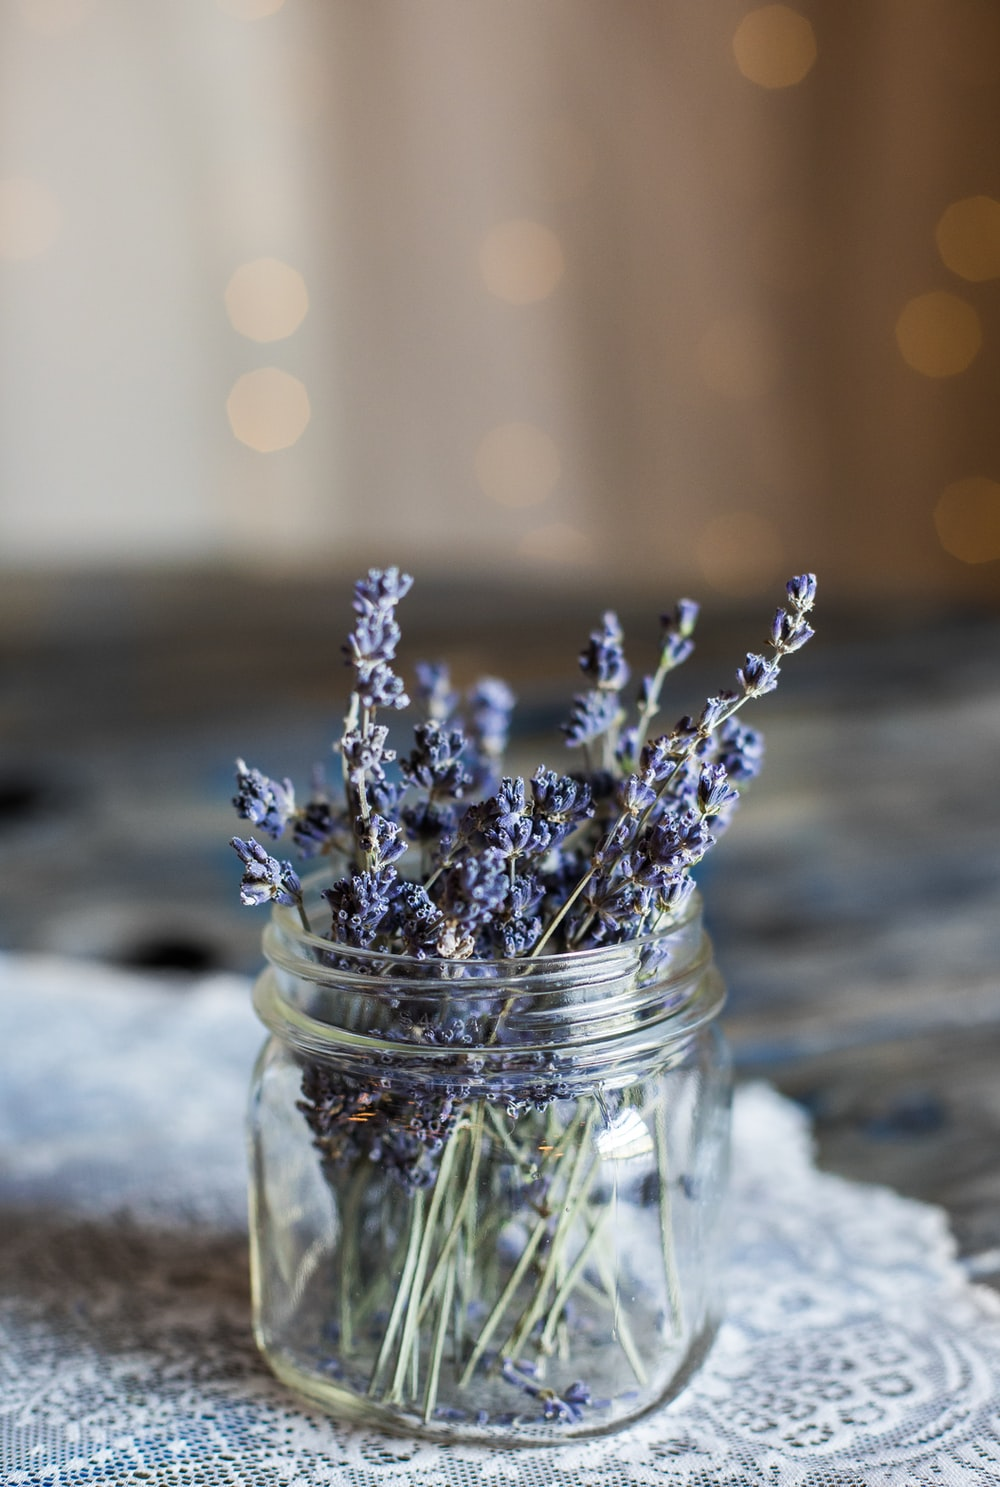 selective focus photography of blue petaled flowers in clear glass jar